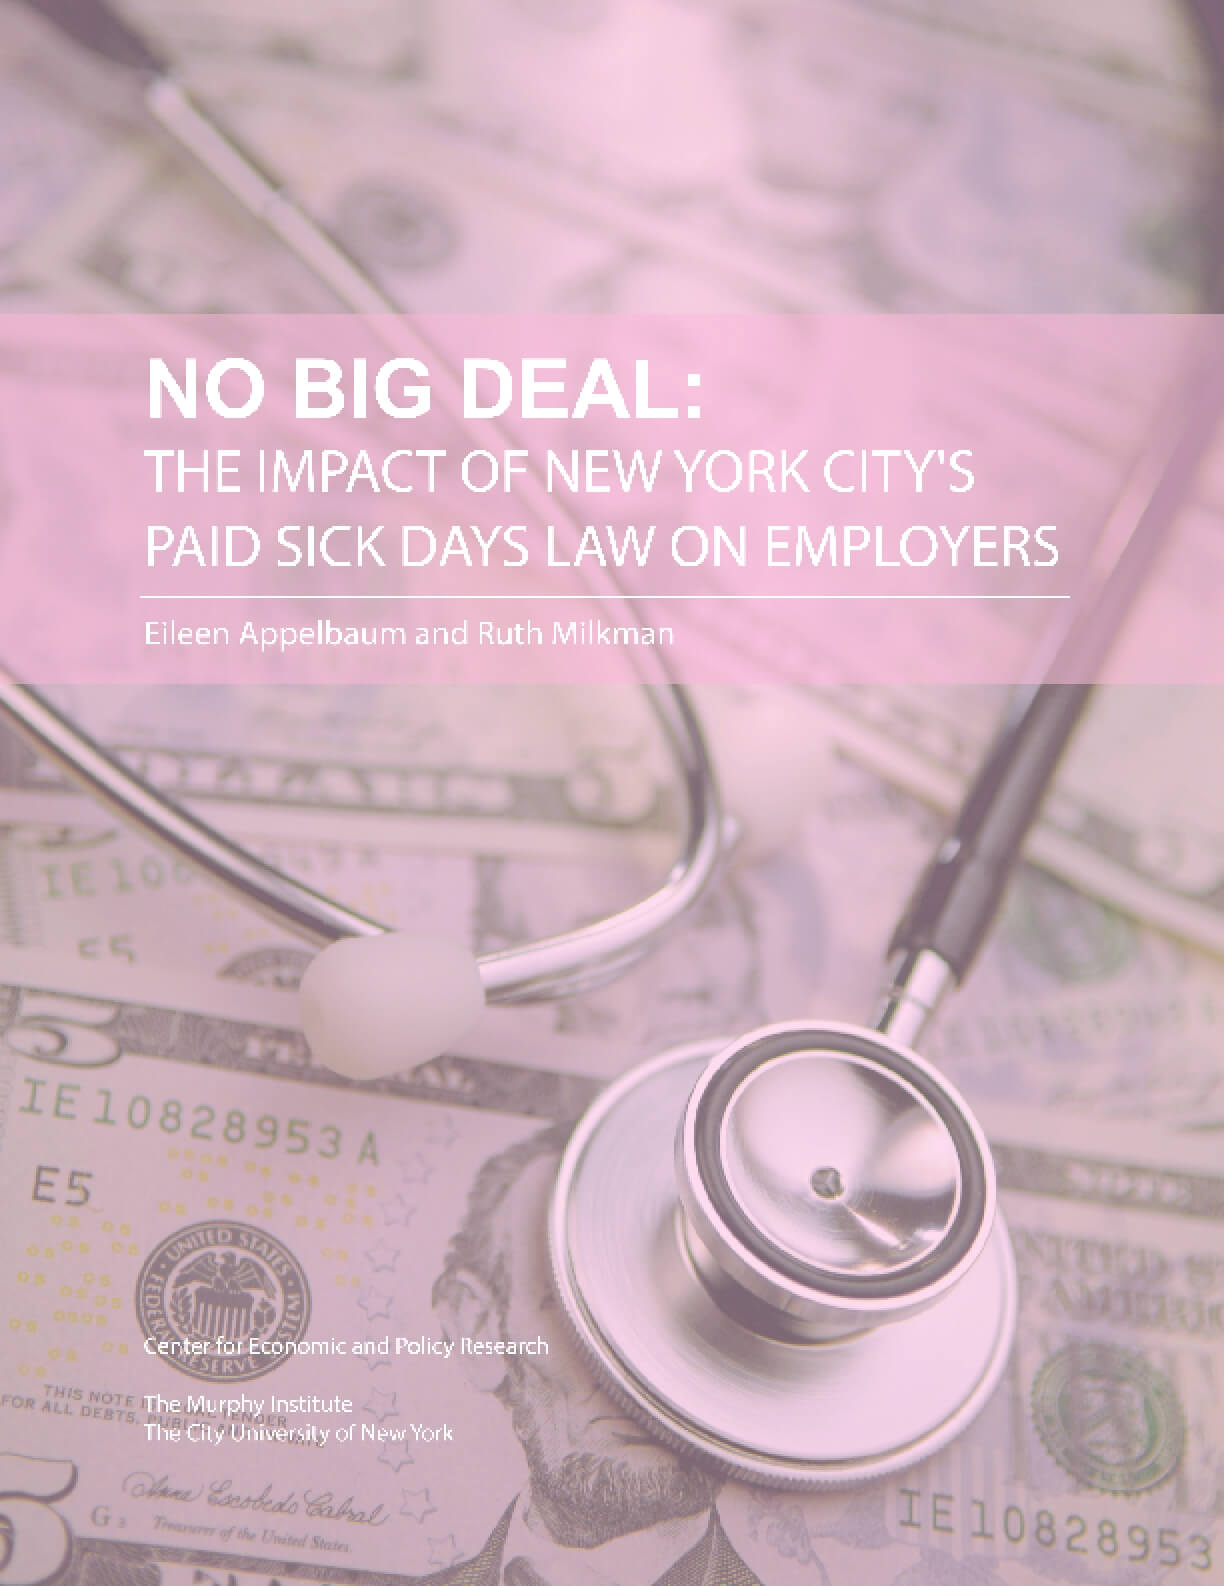 No Big Deal: The Impact of New York City's Paid Sick Days Law on Employers